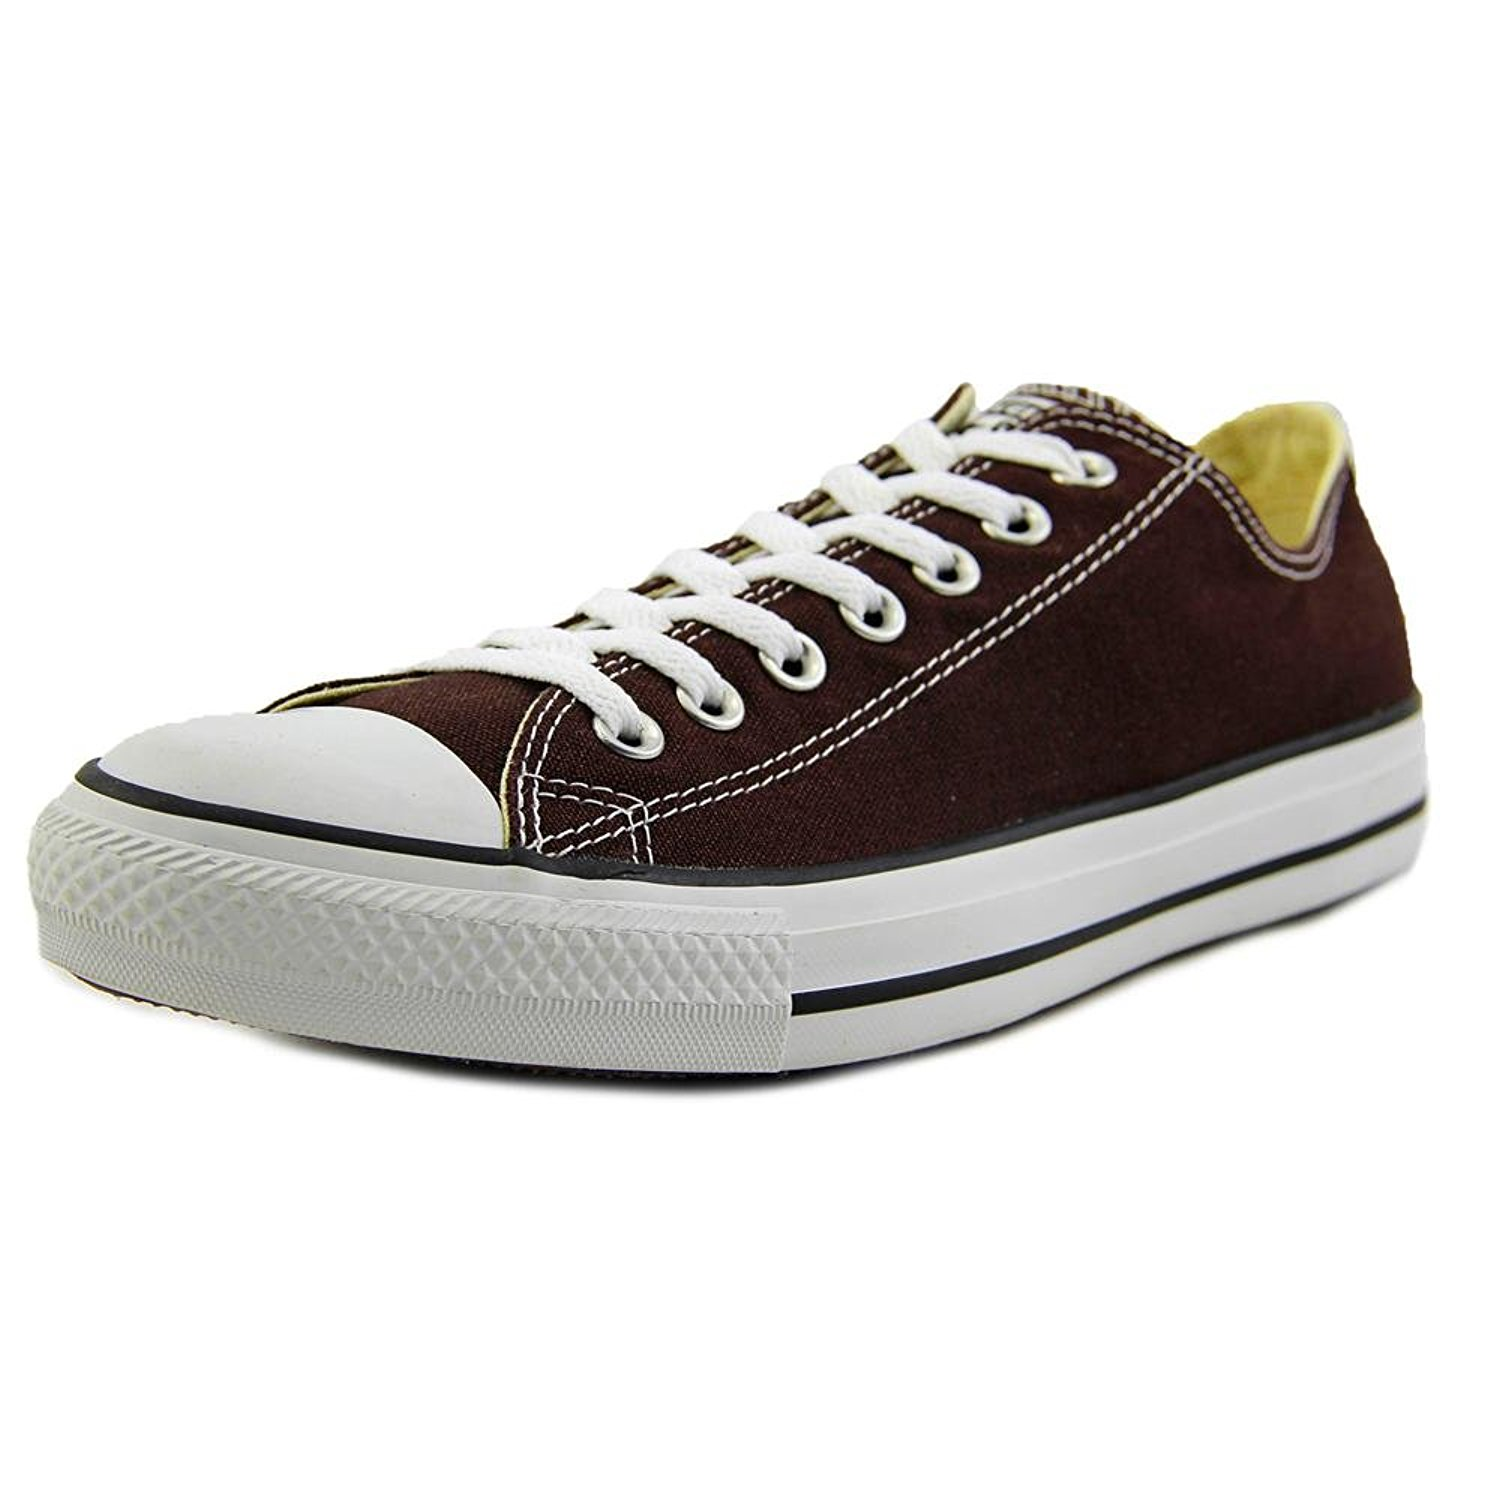 d25195f0e022 Converse Chuck Taylor All Star Ox Men Round Toe Canvas Brown Sneakers